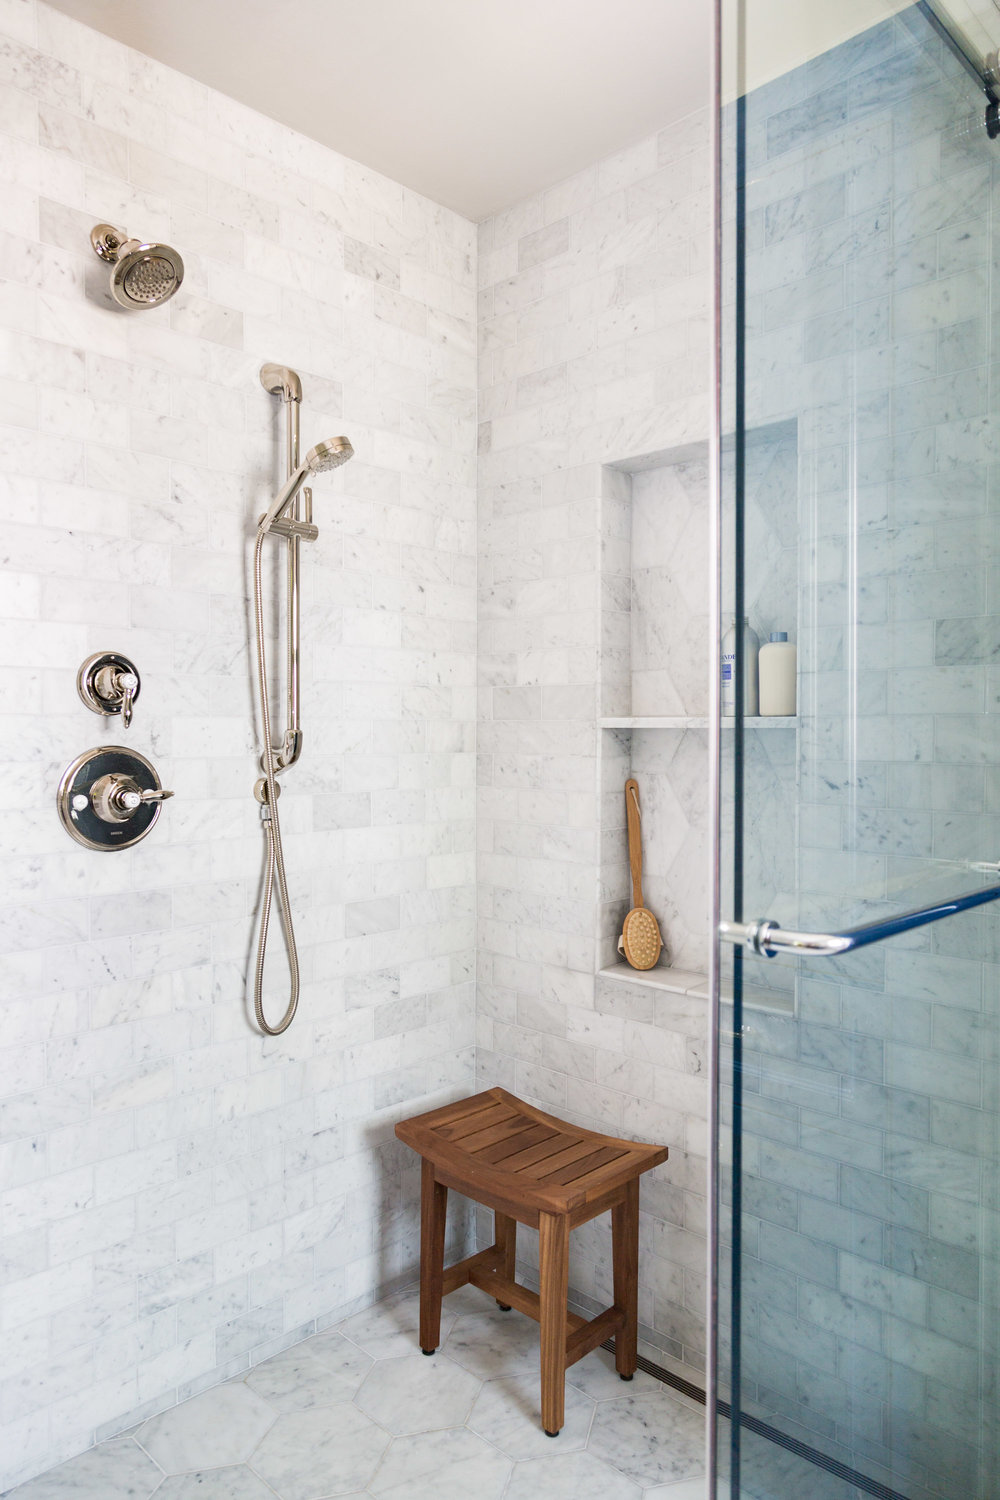 Vintage Carrara marble shampoo niche with linear drain in bathroom remodel Carla Aston Designer